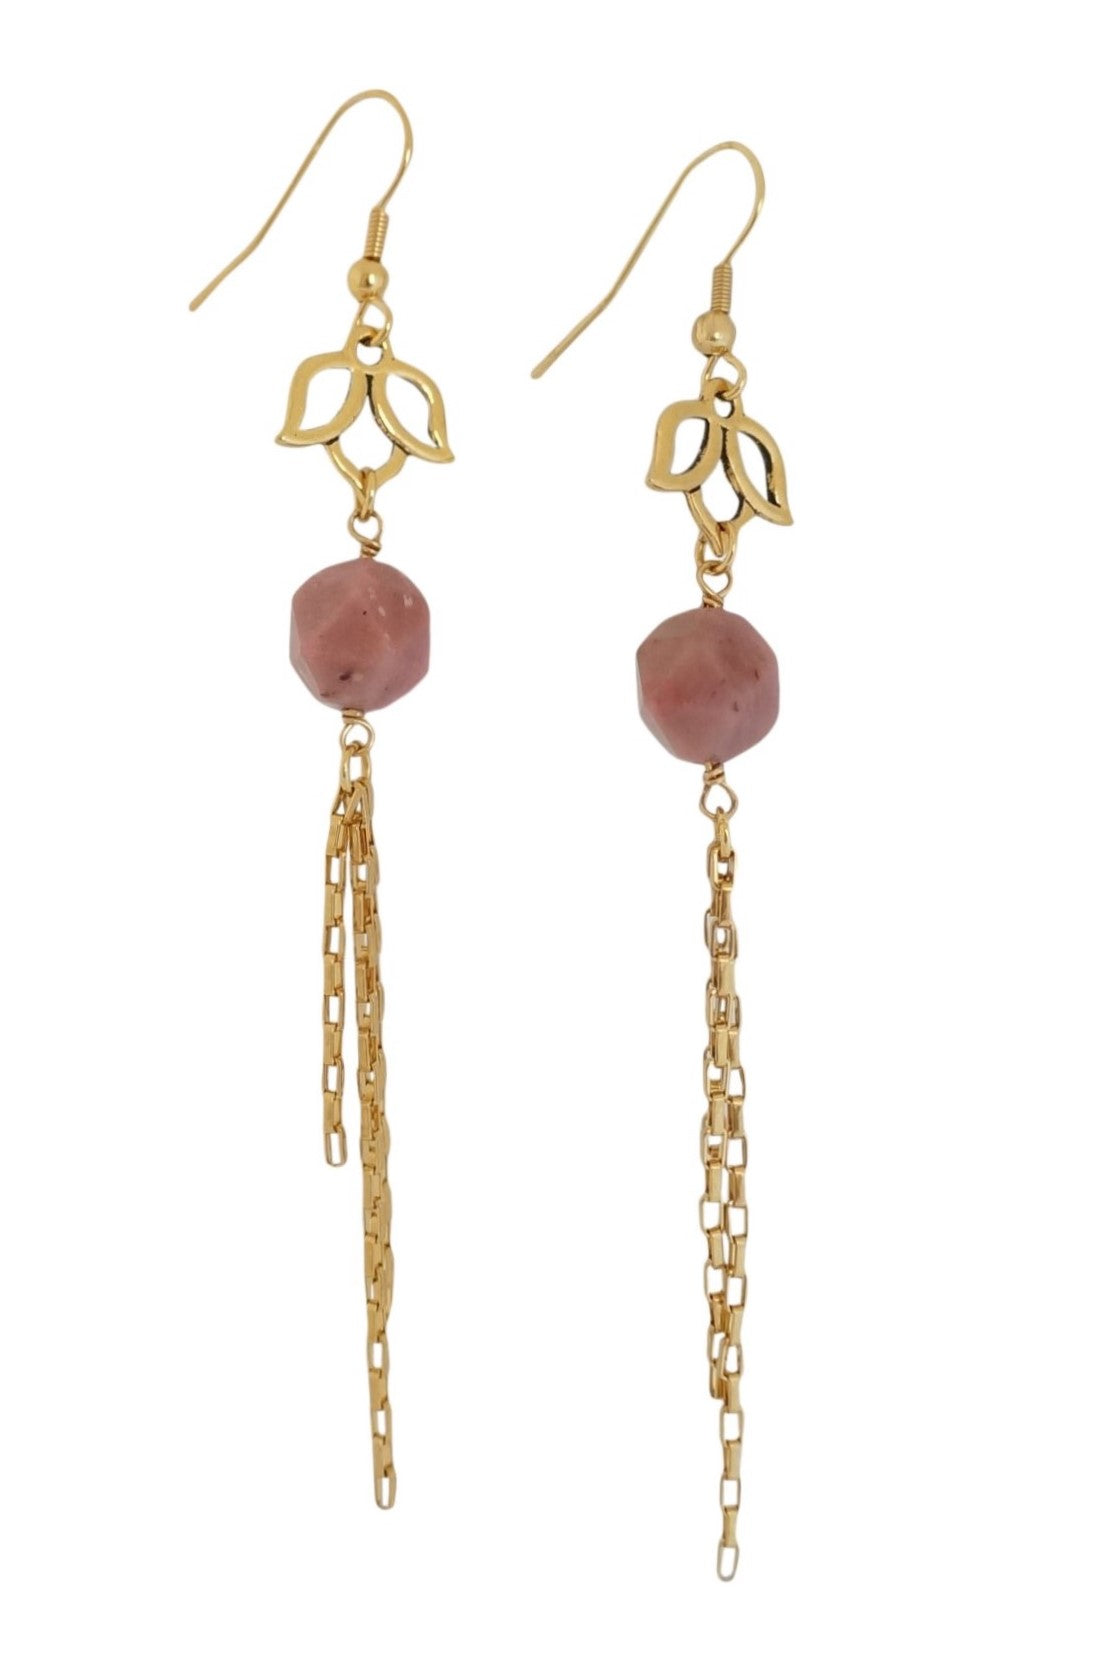 Pure Love Earrings - Carolyn Hearn Designs